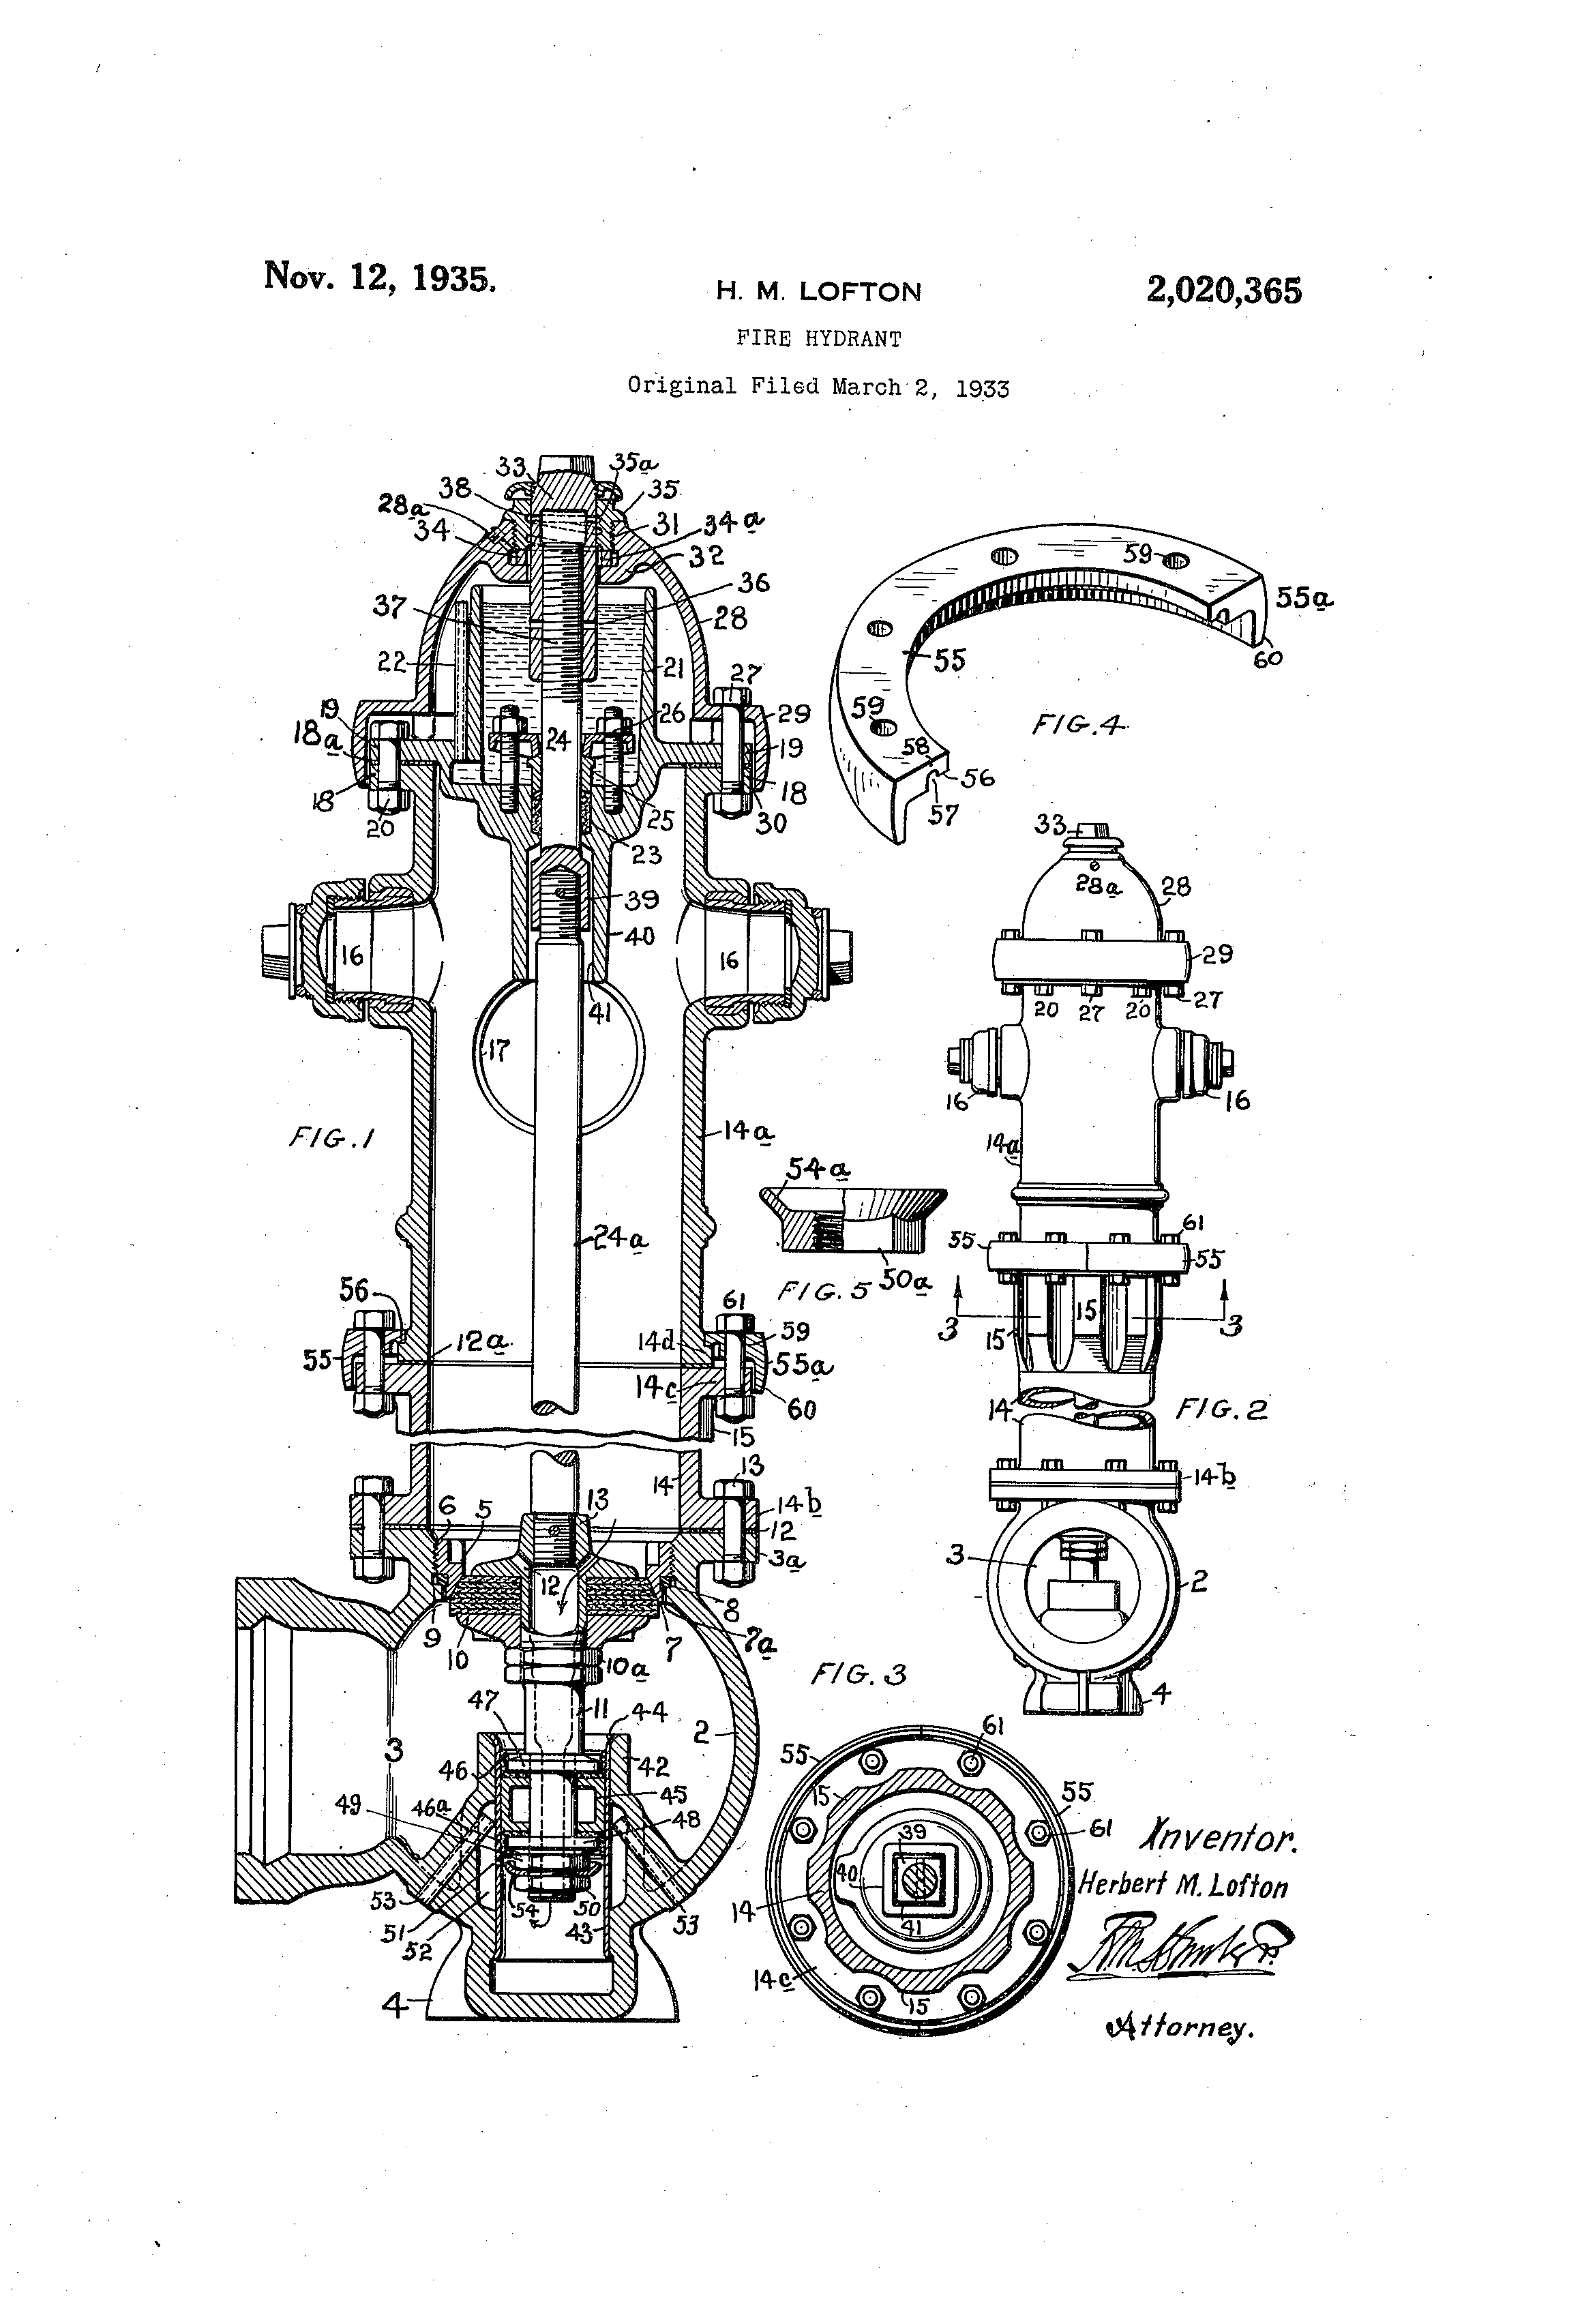 basic fire hydrant diagram ford fiesta audio wiring patent us2020365 google patents